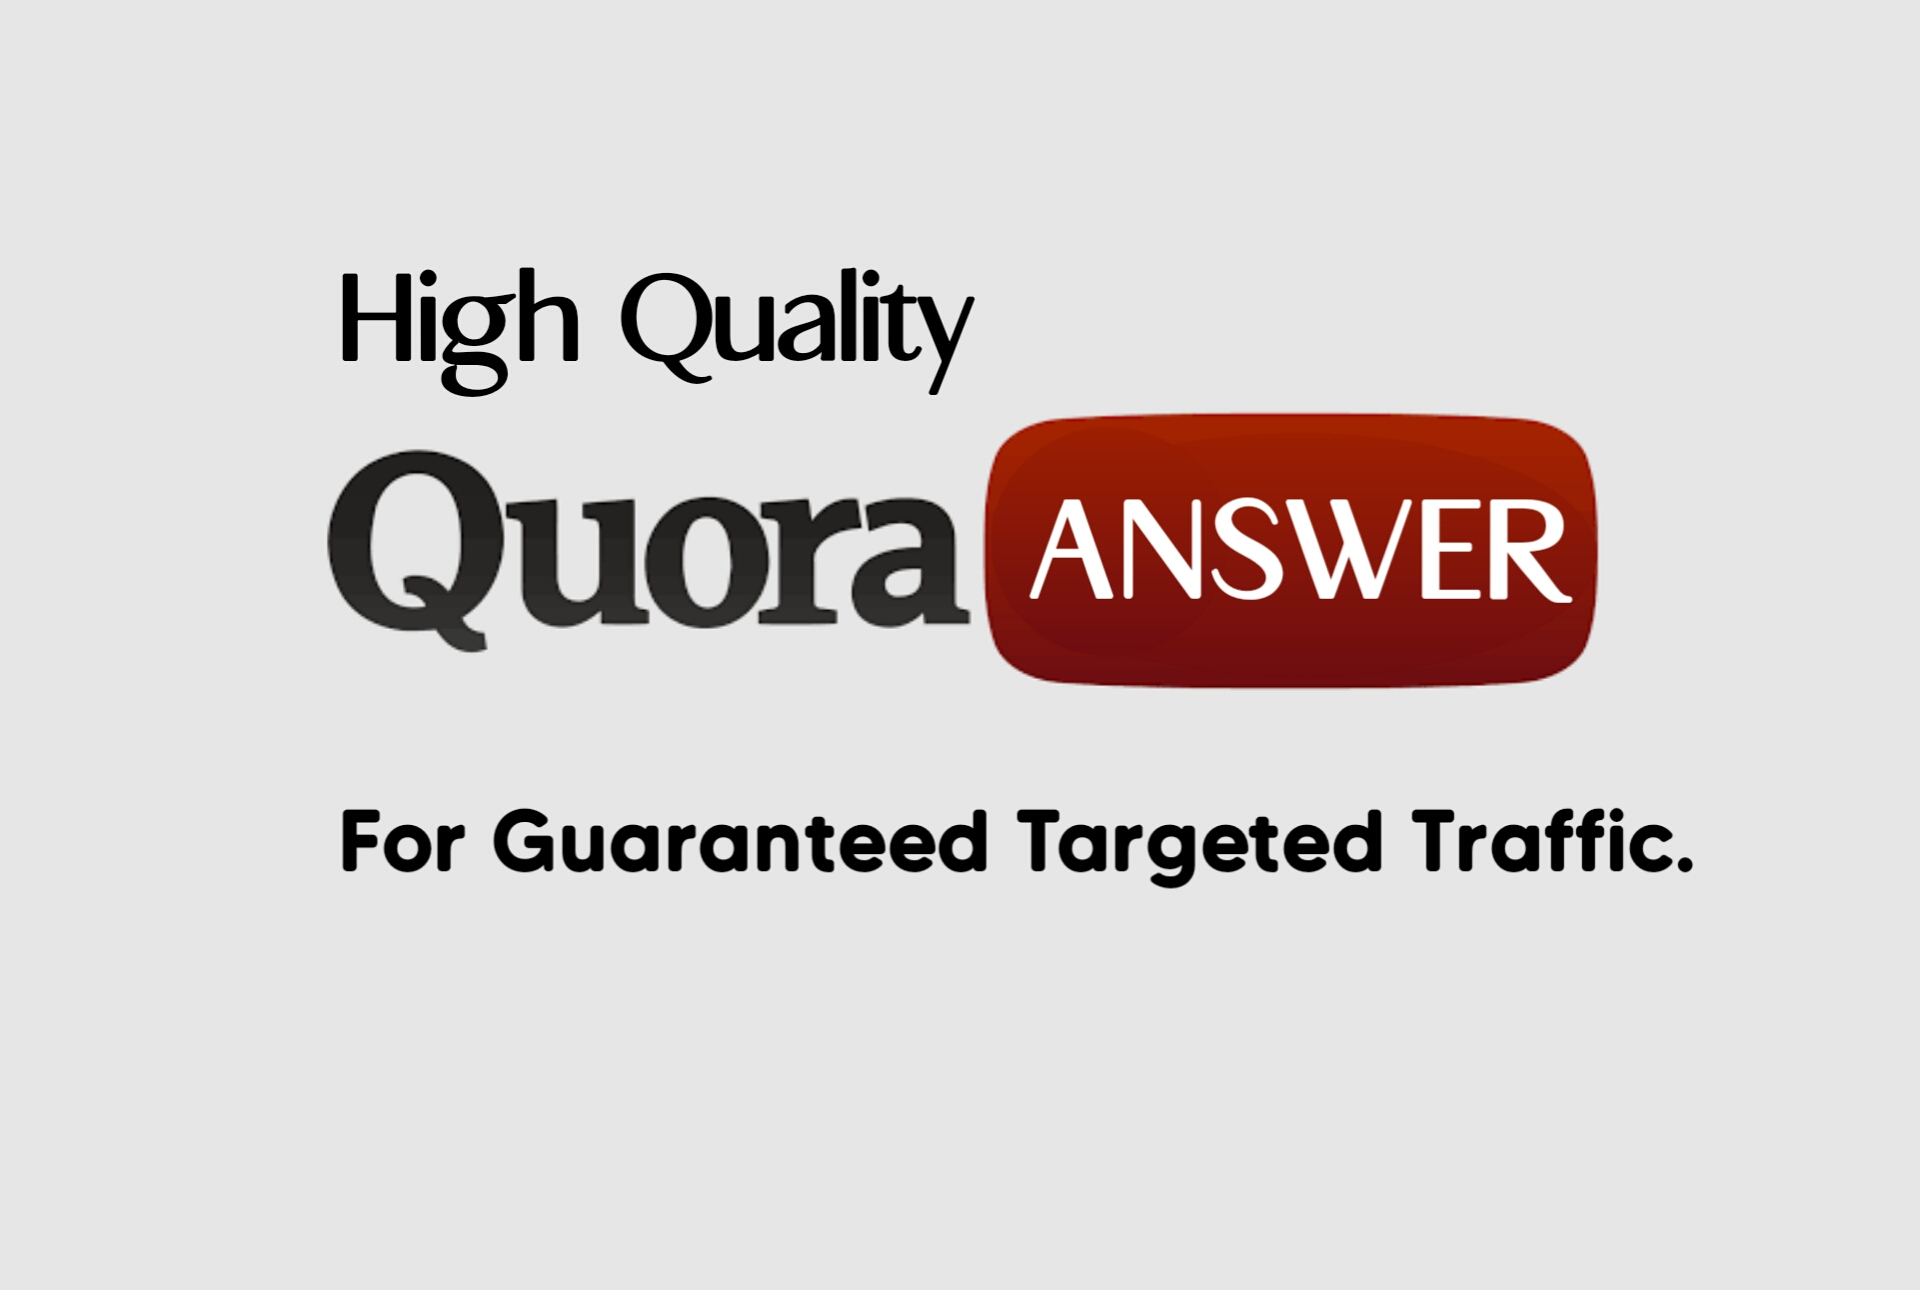 Guaranteed Traffic to your website with 15 High Quality Quora Answers